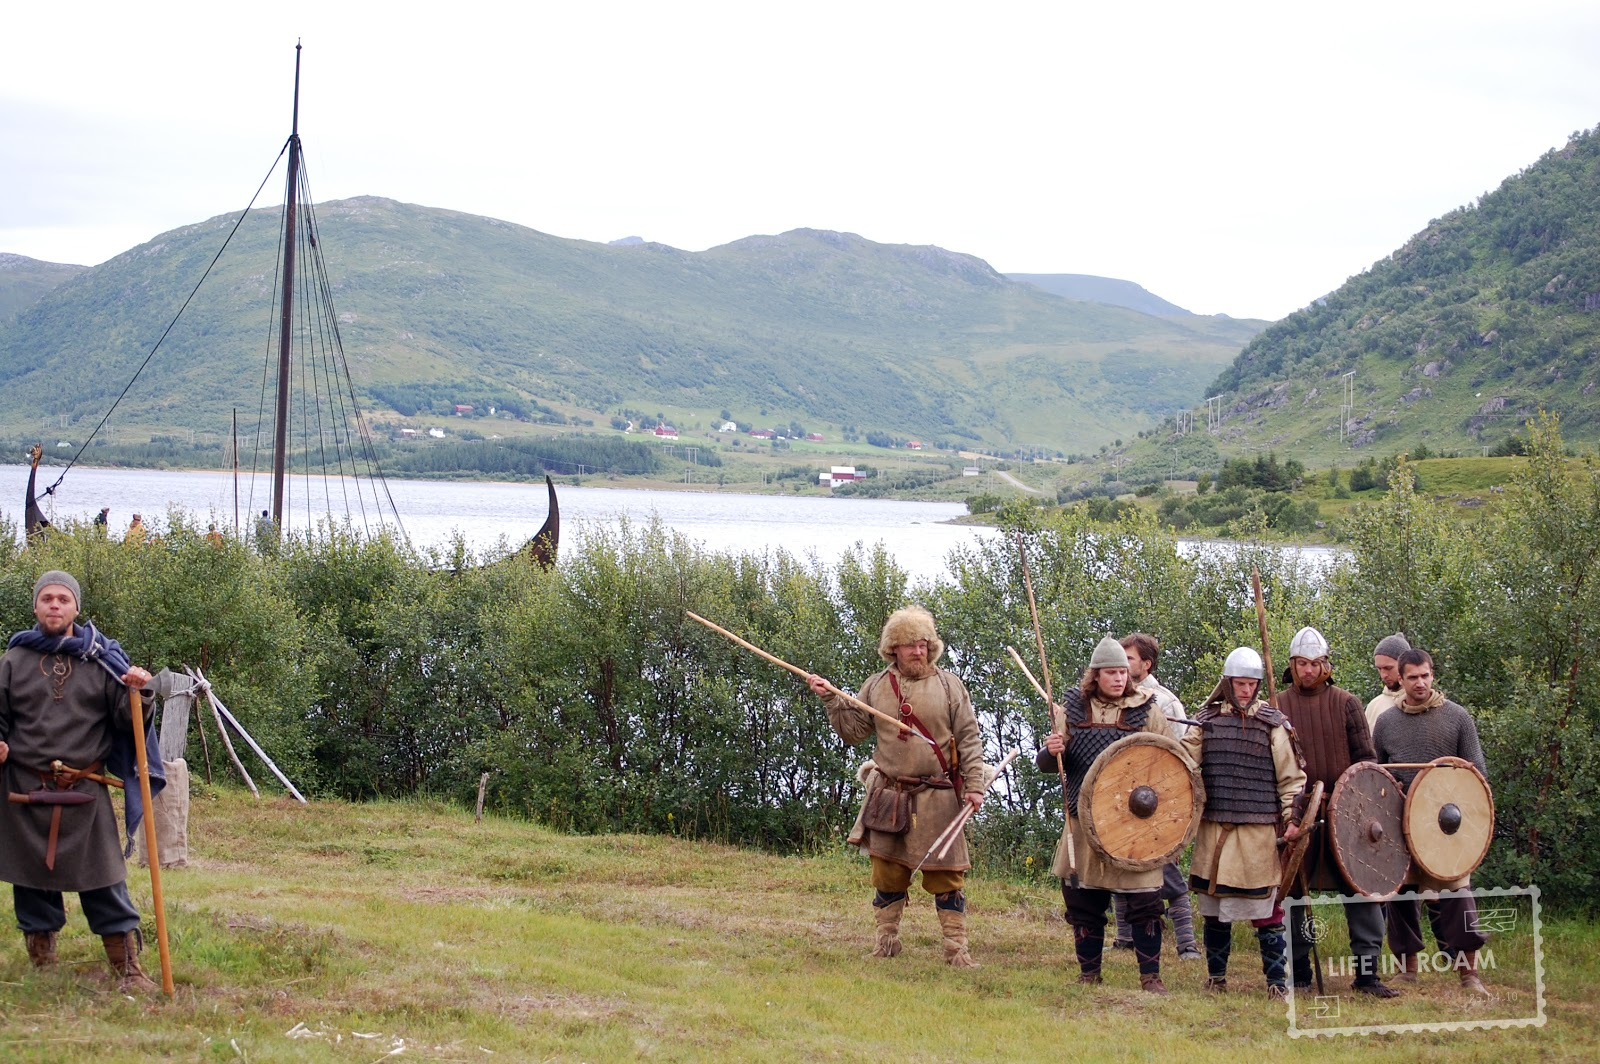 Vikings and bows and arrows